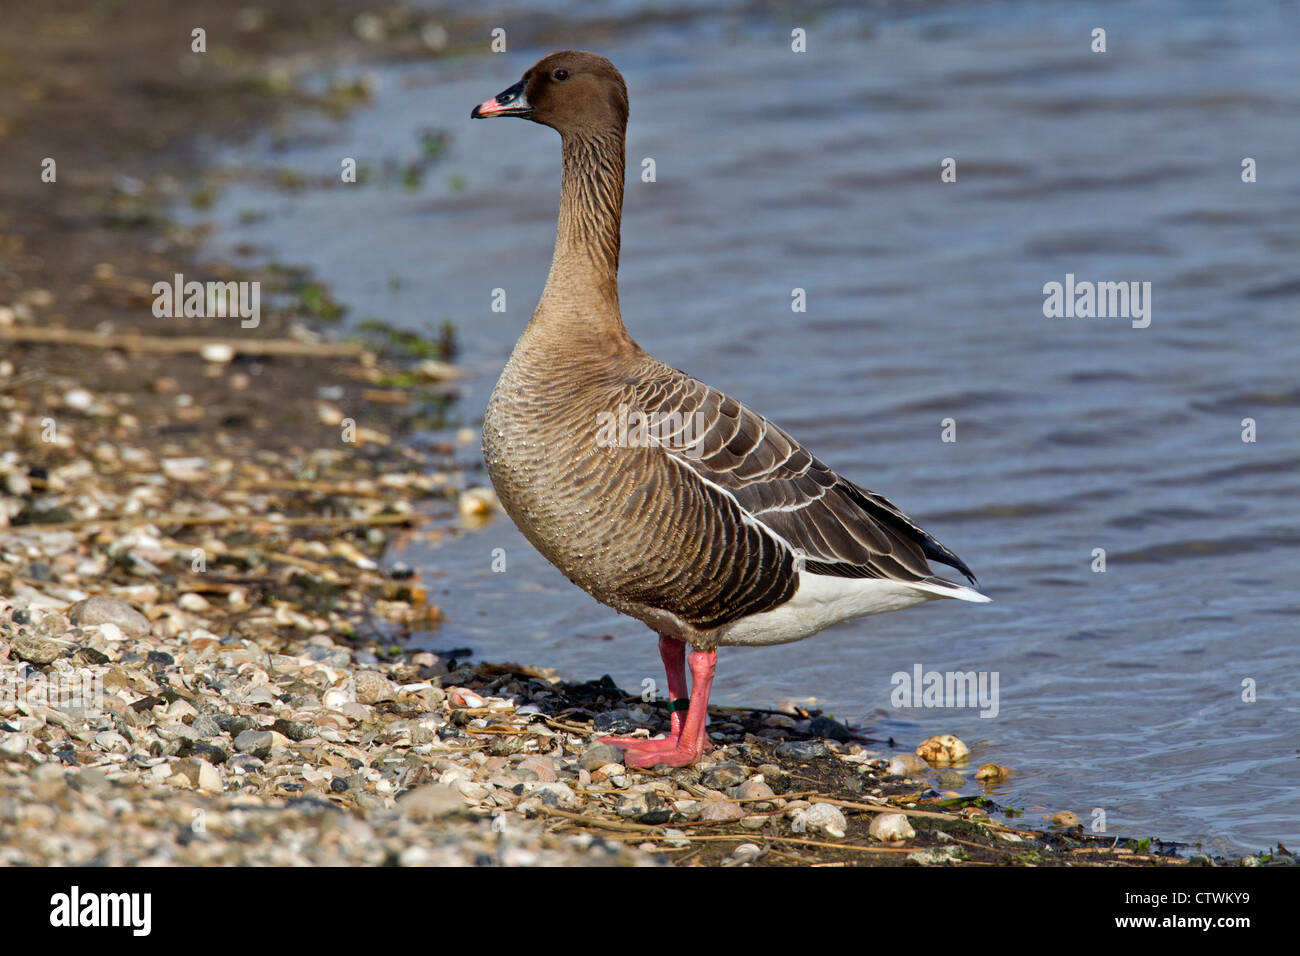 Pink-footed goose (Anser brachyrhynchus) portrait, Germany - Stock Image